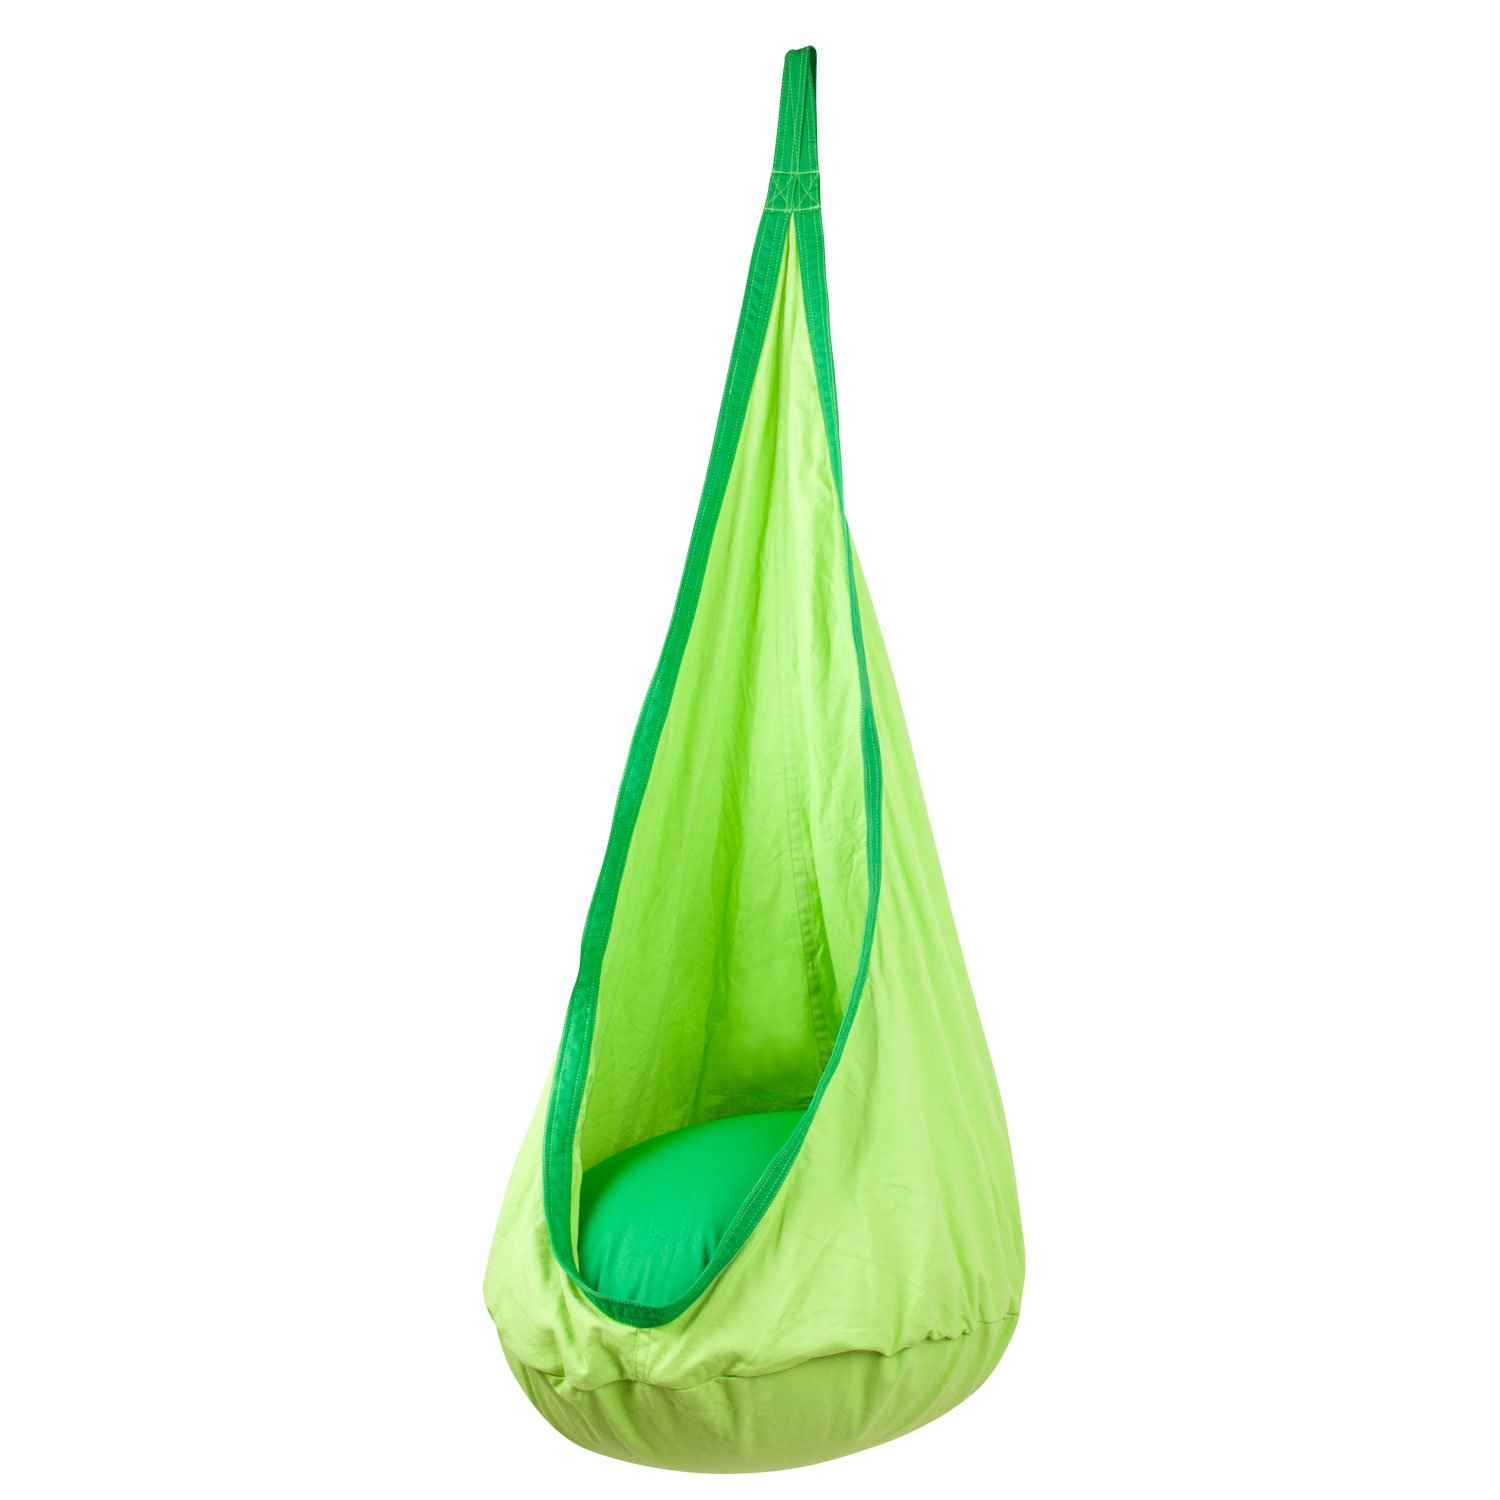 amazon    driftsun hammock pod kids swing   outdoor and indoor children u0027s hammock chair nook   hardware included  green   garden  u0026 outdoor amazon    driftsun hammock pod kids swing   outdoor and indoor      rh   amazon